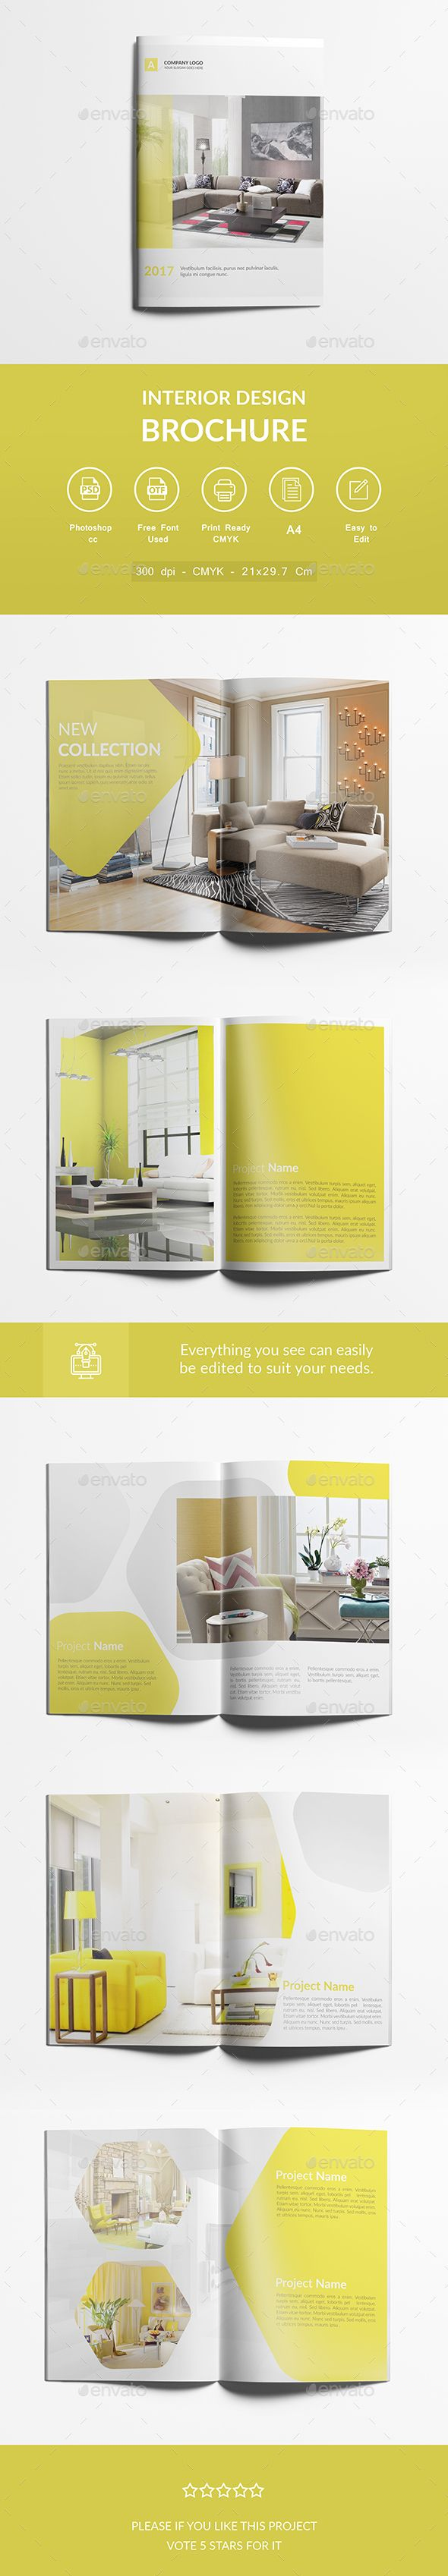 Interior Design Brochure A4 PSD Template O Only Available Here